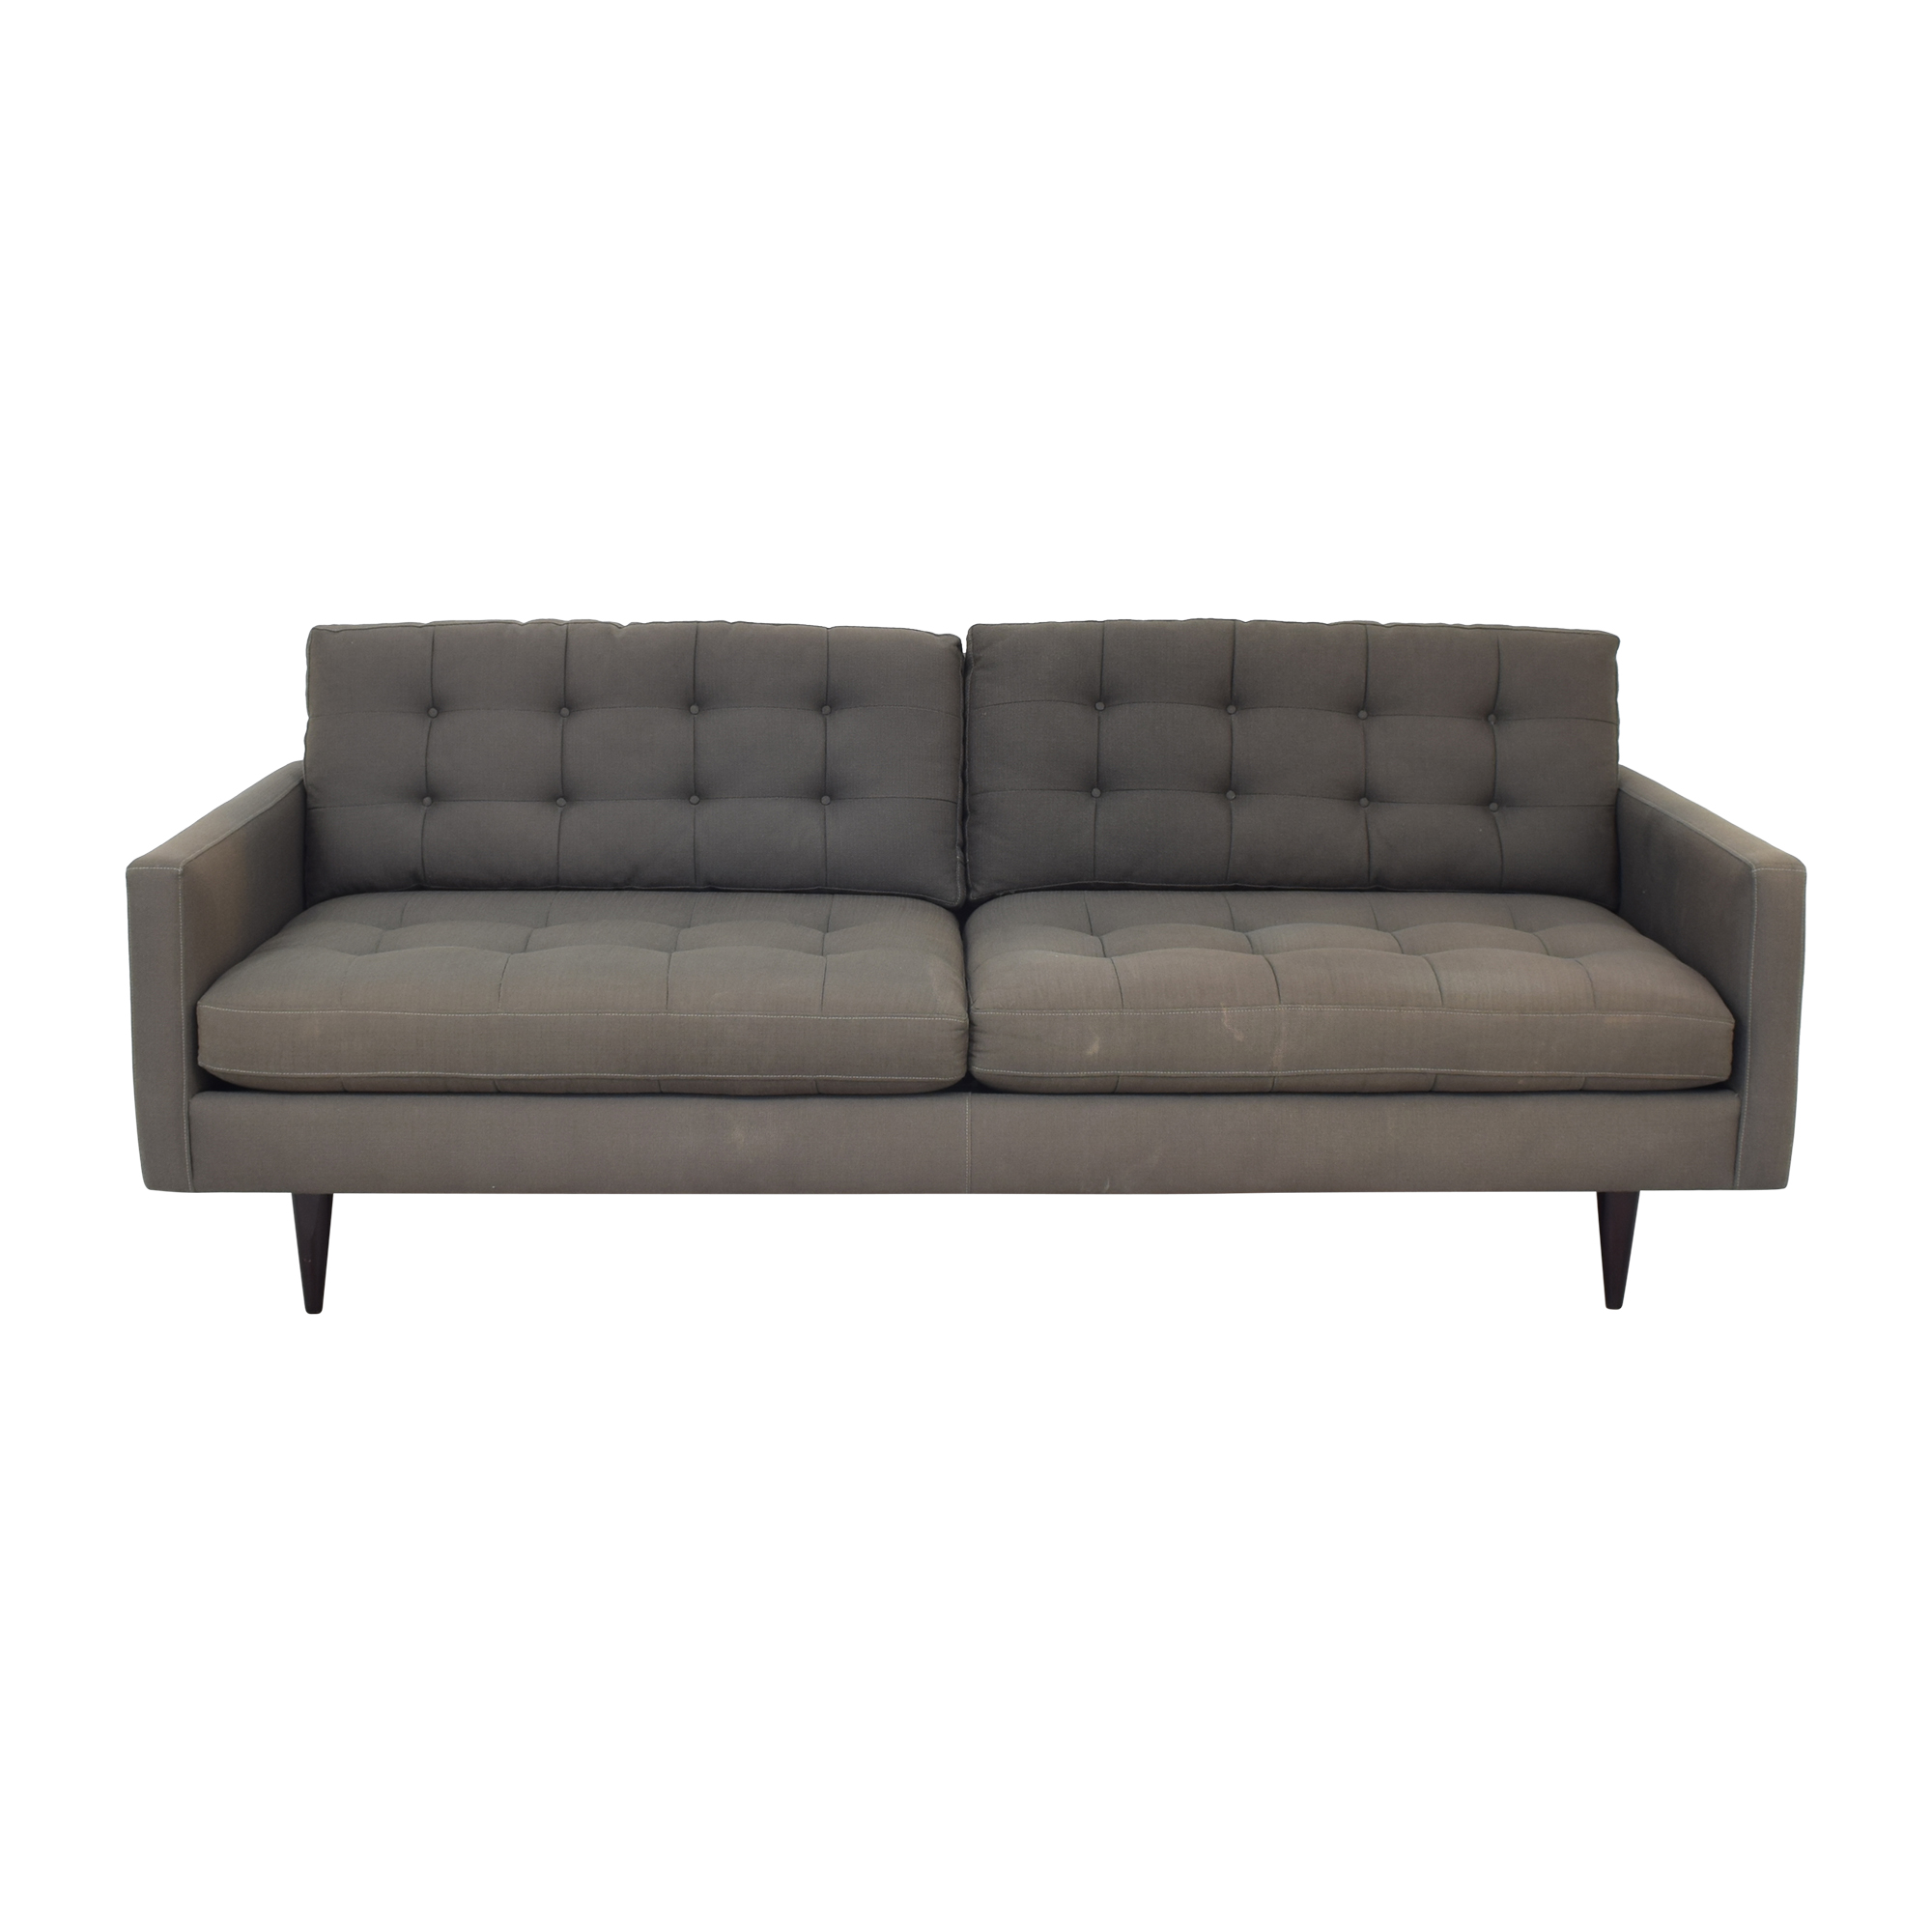 shop Crate & Barrel Crate & Barrel Petrie Midcentury Sofa online